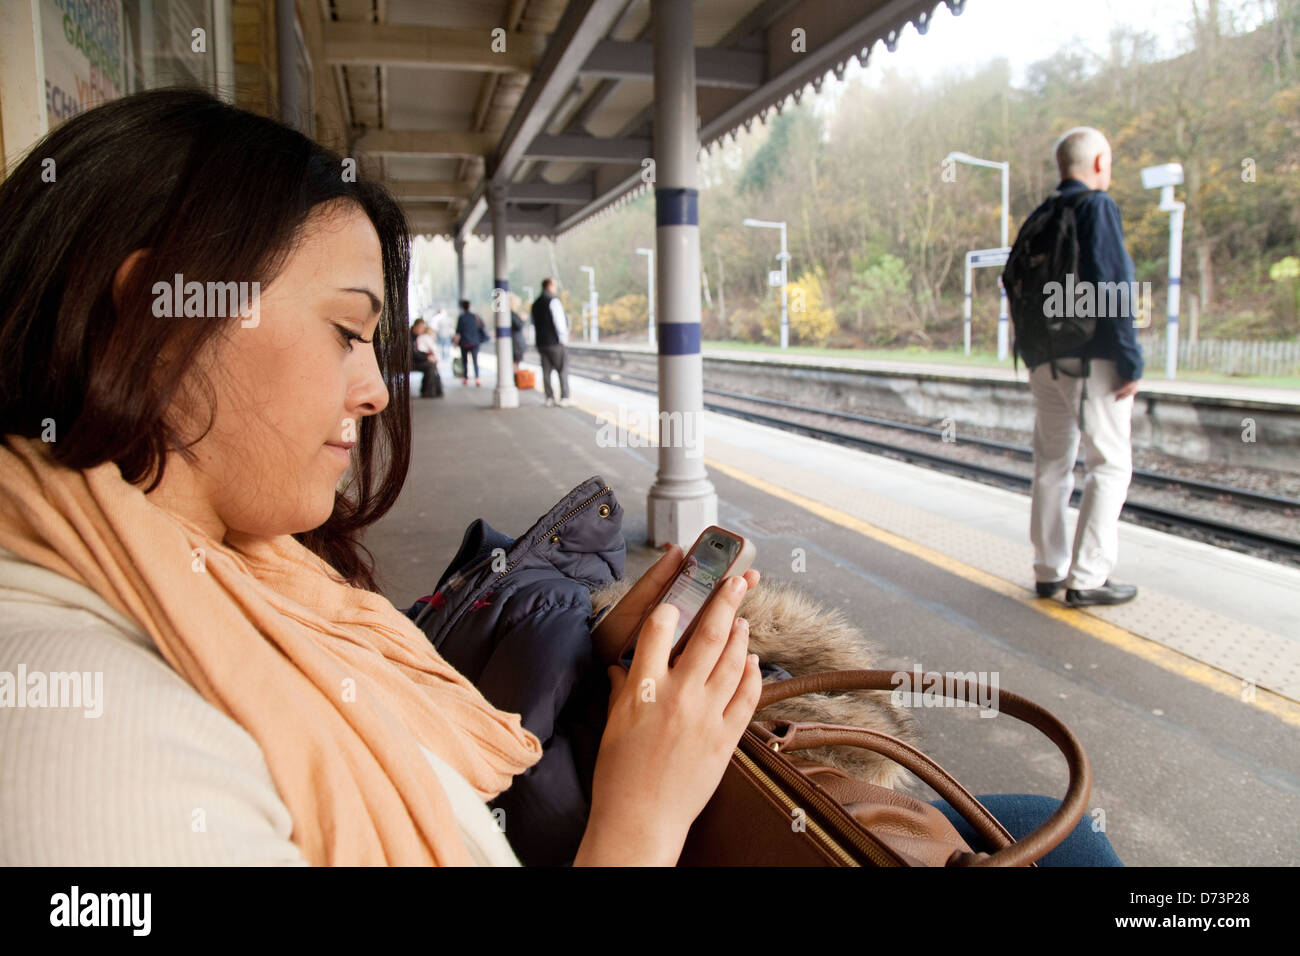 A young woman using her mobile phone on a station platform waiting for a train, London UK - Stock Image